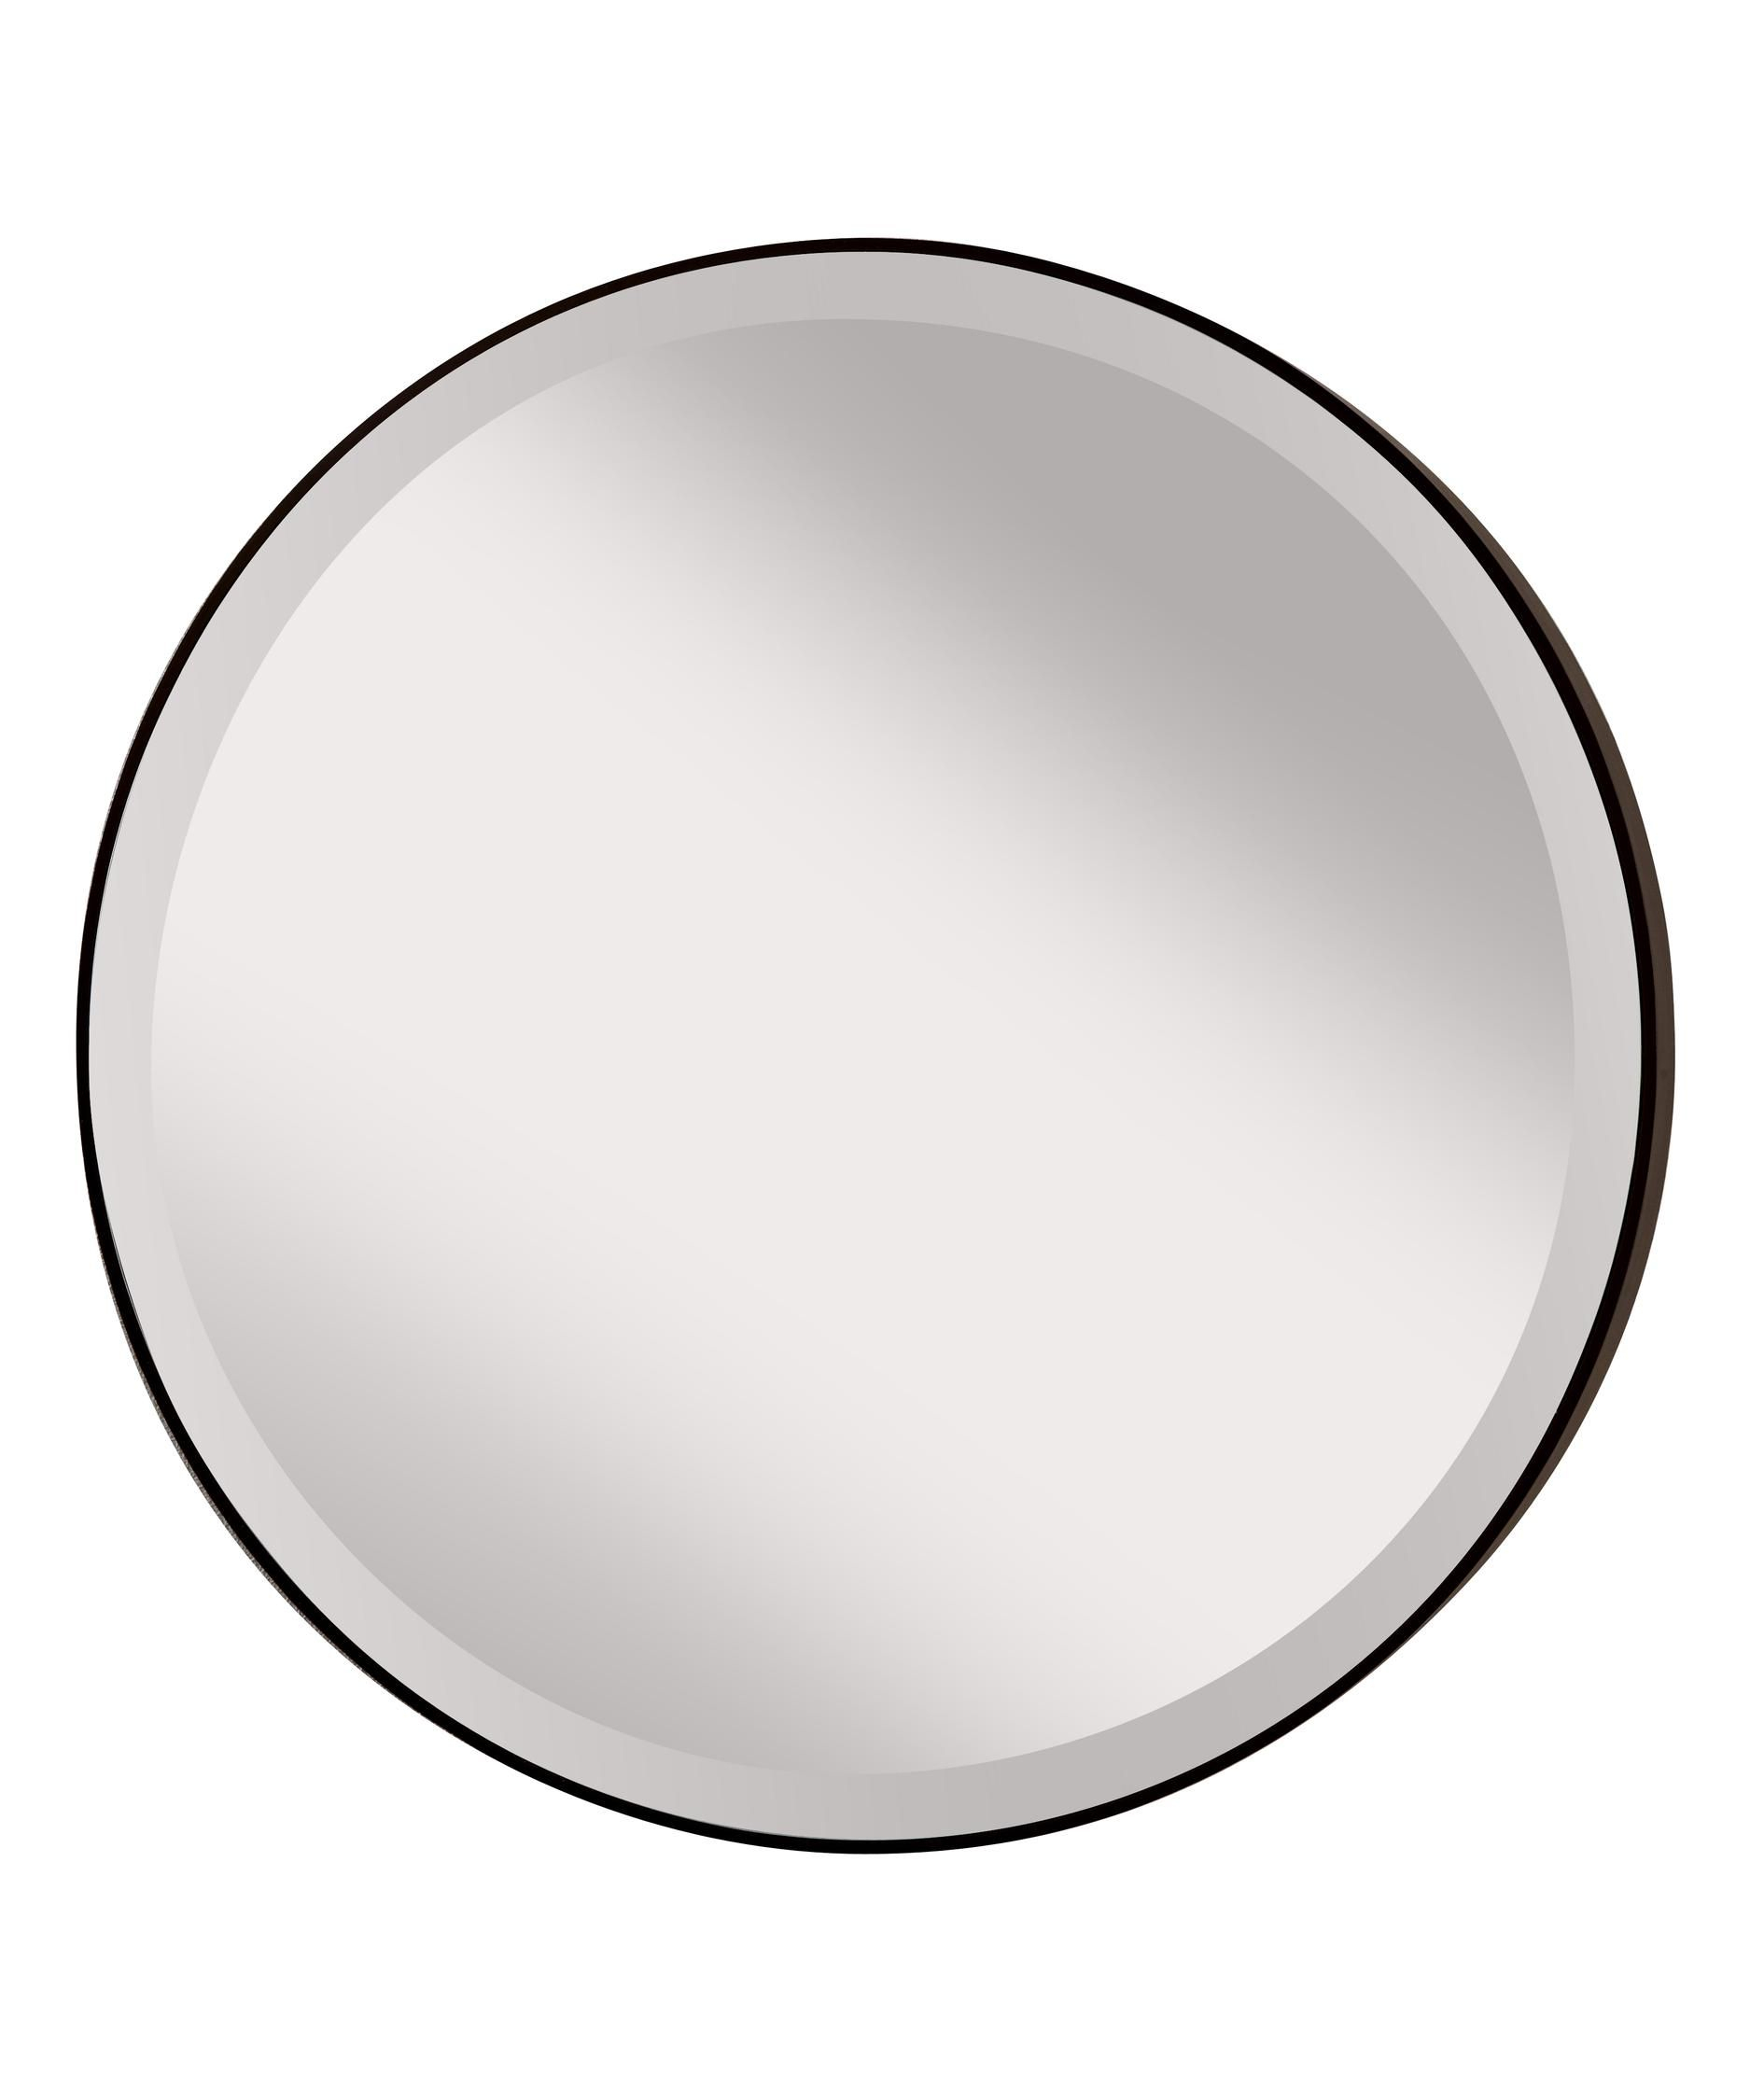 Levan Modern & Contemporary Beveled Accent Mirror | Newtown Pertaining To Newtown Accent Mirrors (View 23 of 30)